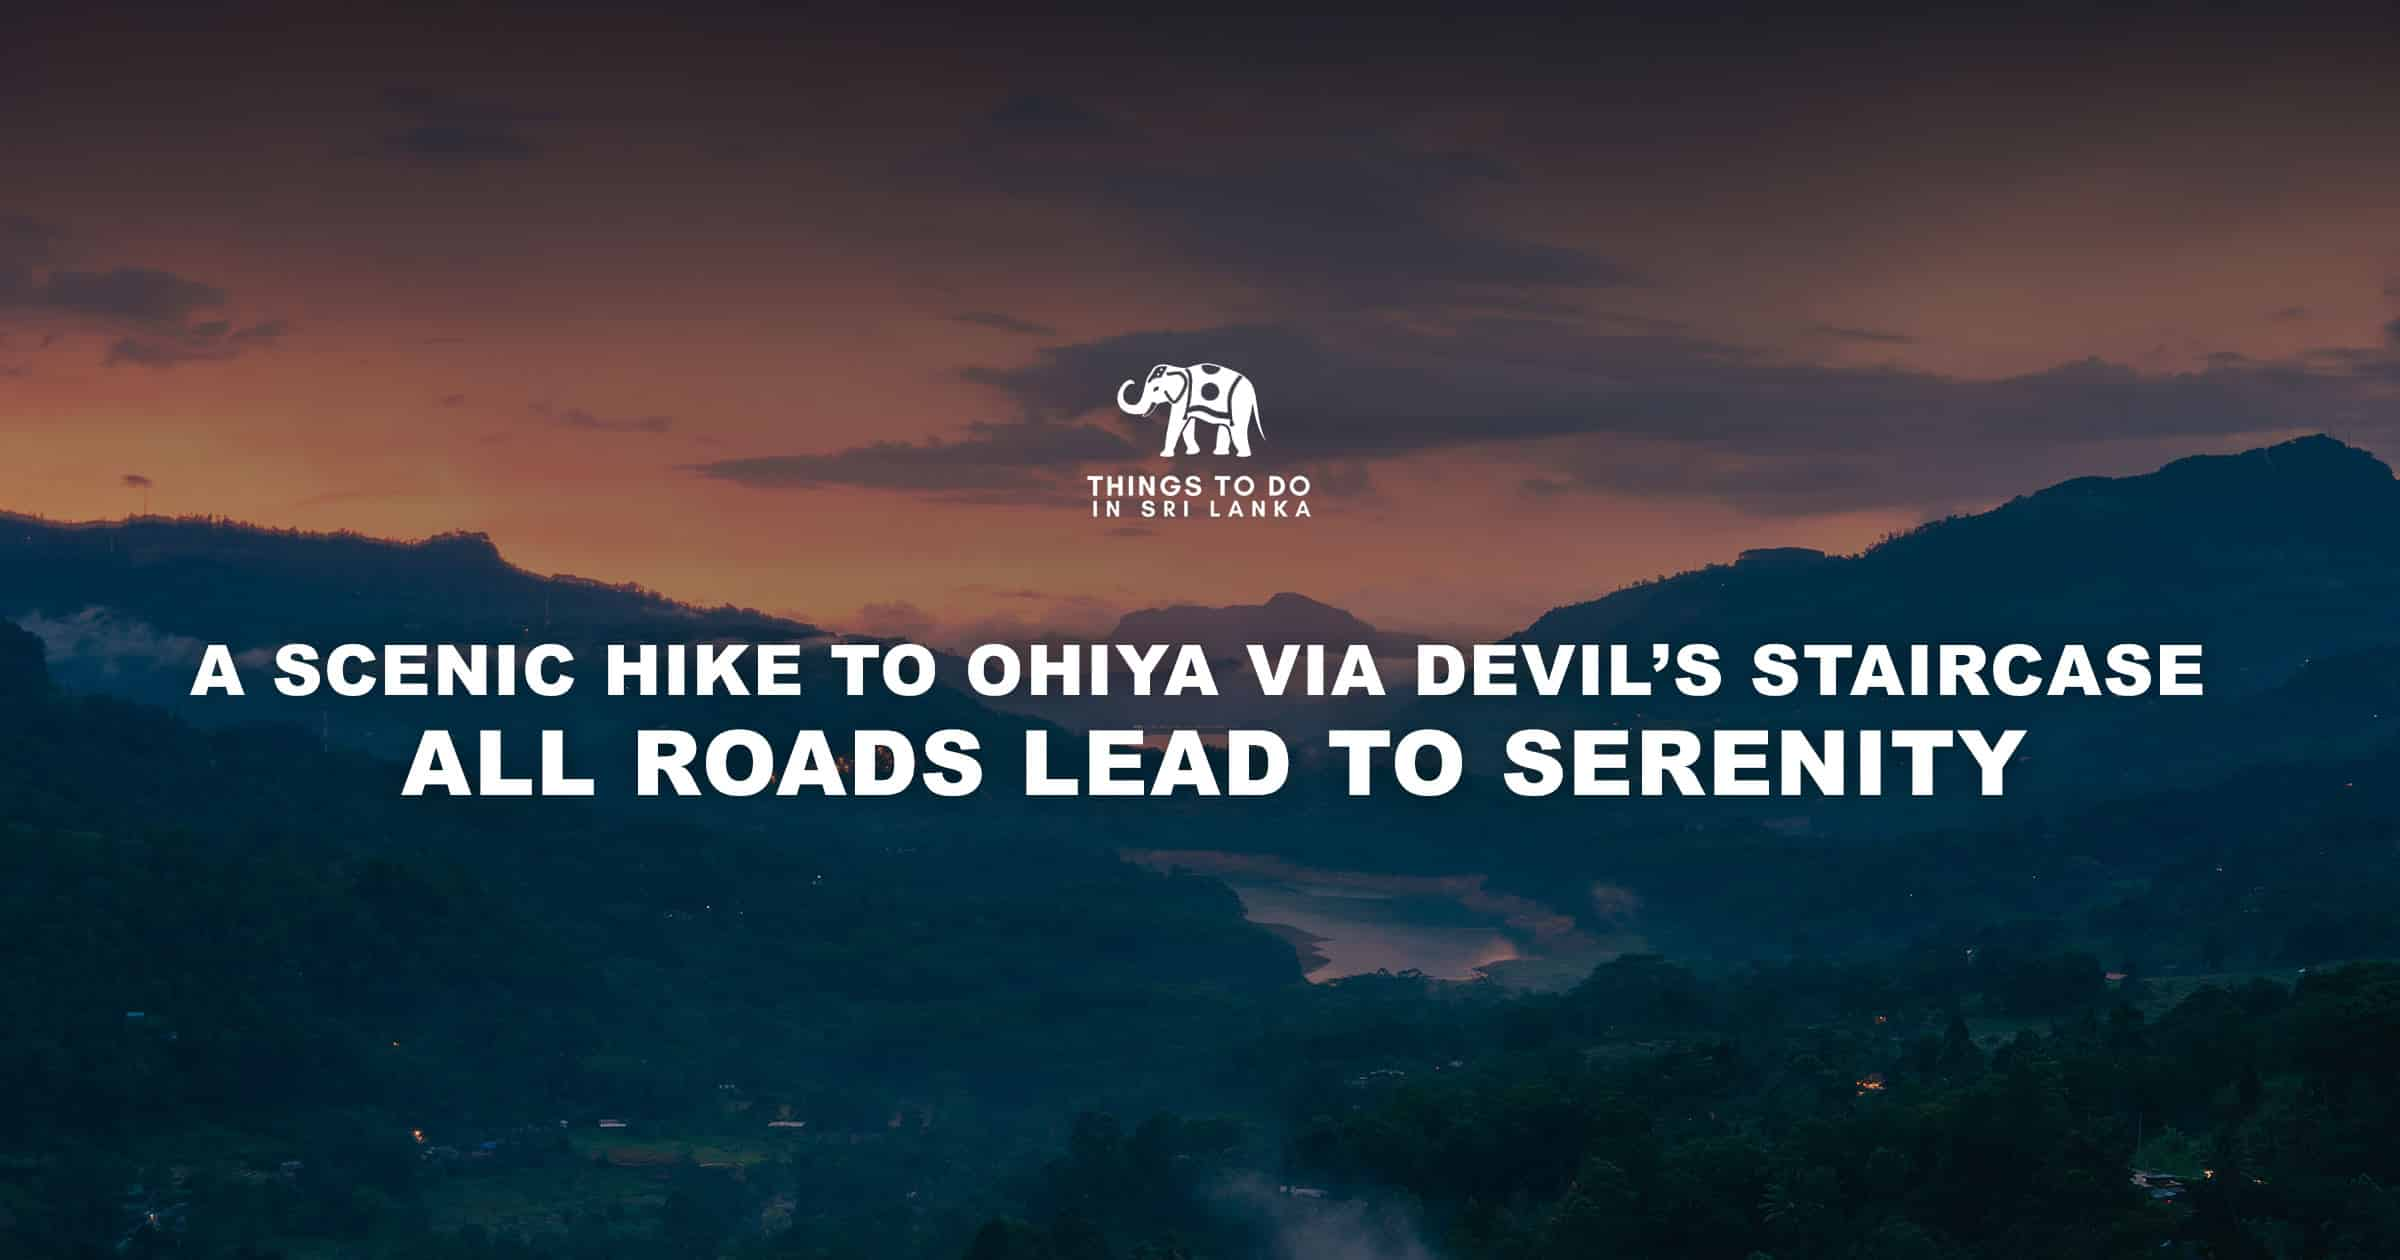 A Scenic Hike to Ohiya via Devil's staircase - All roads lead to serenity